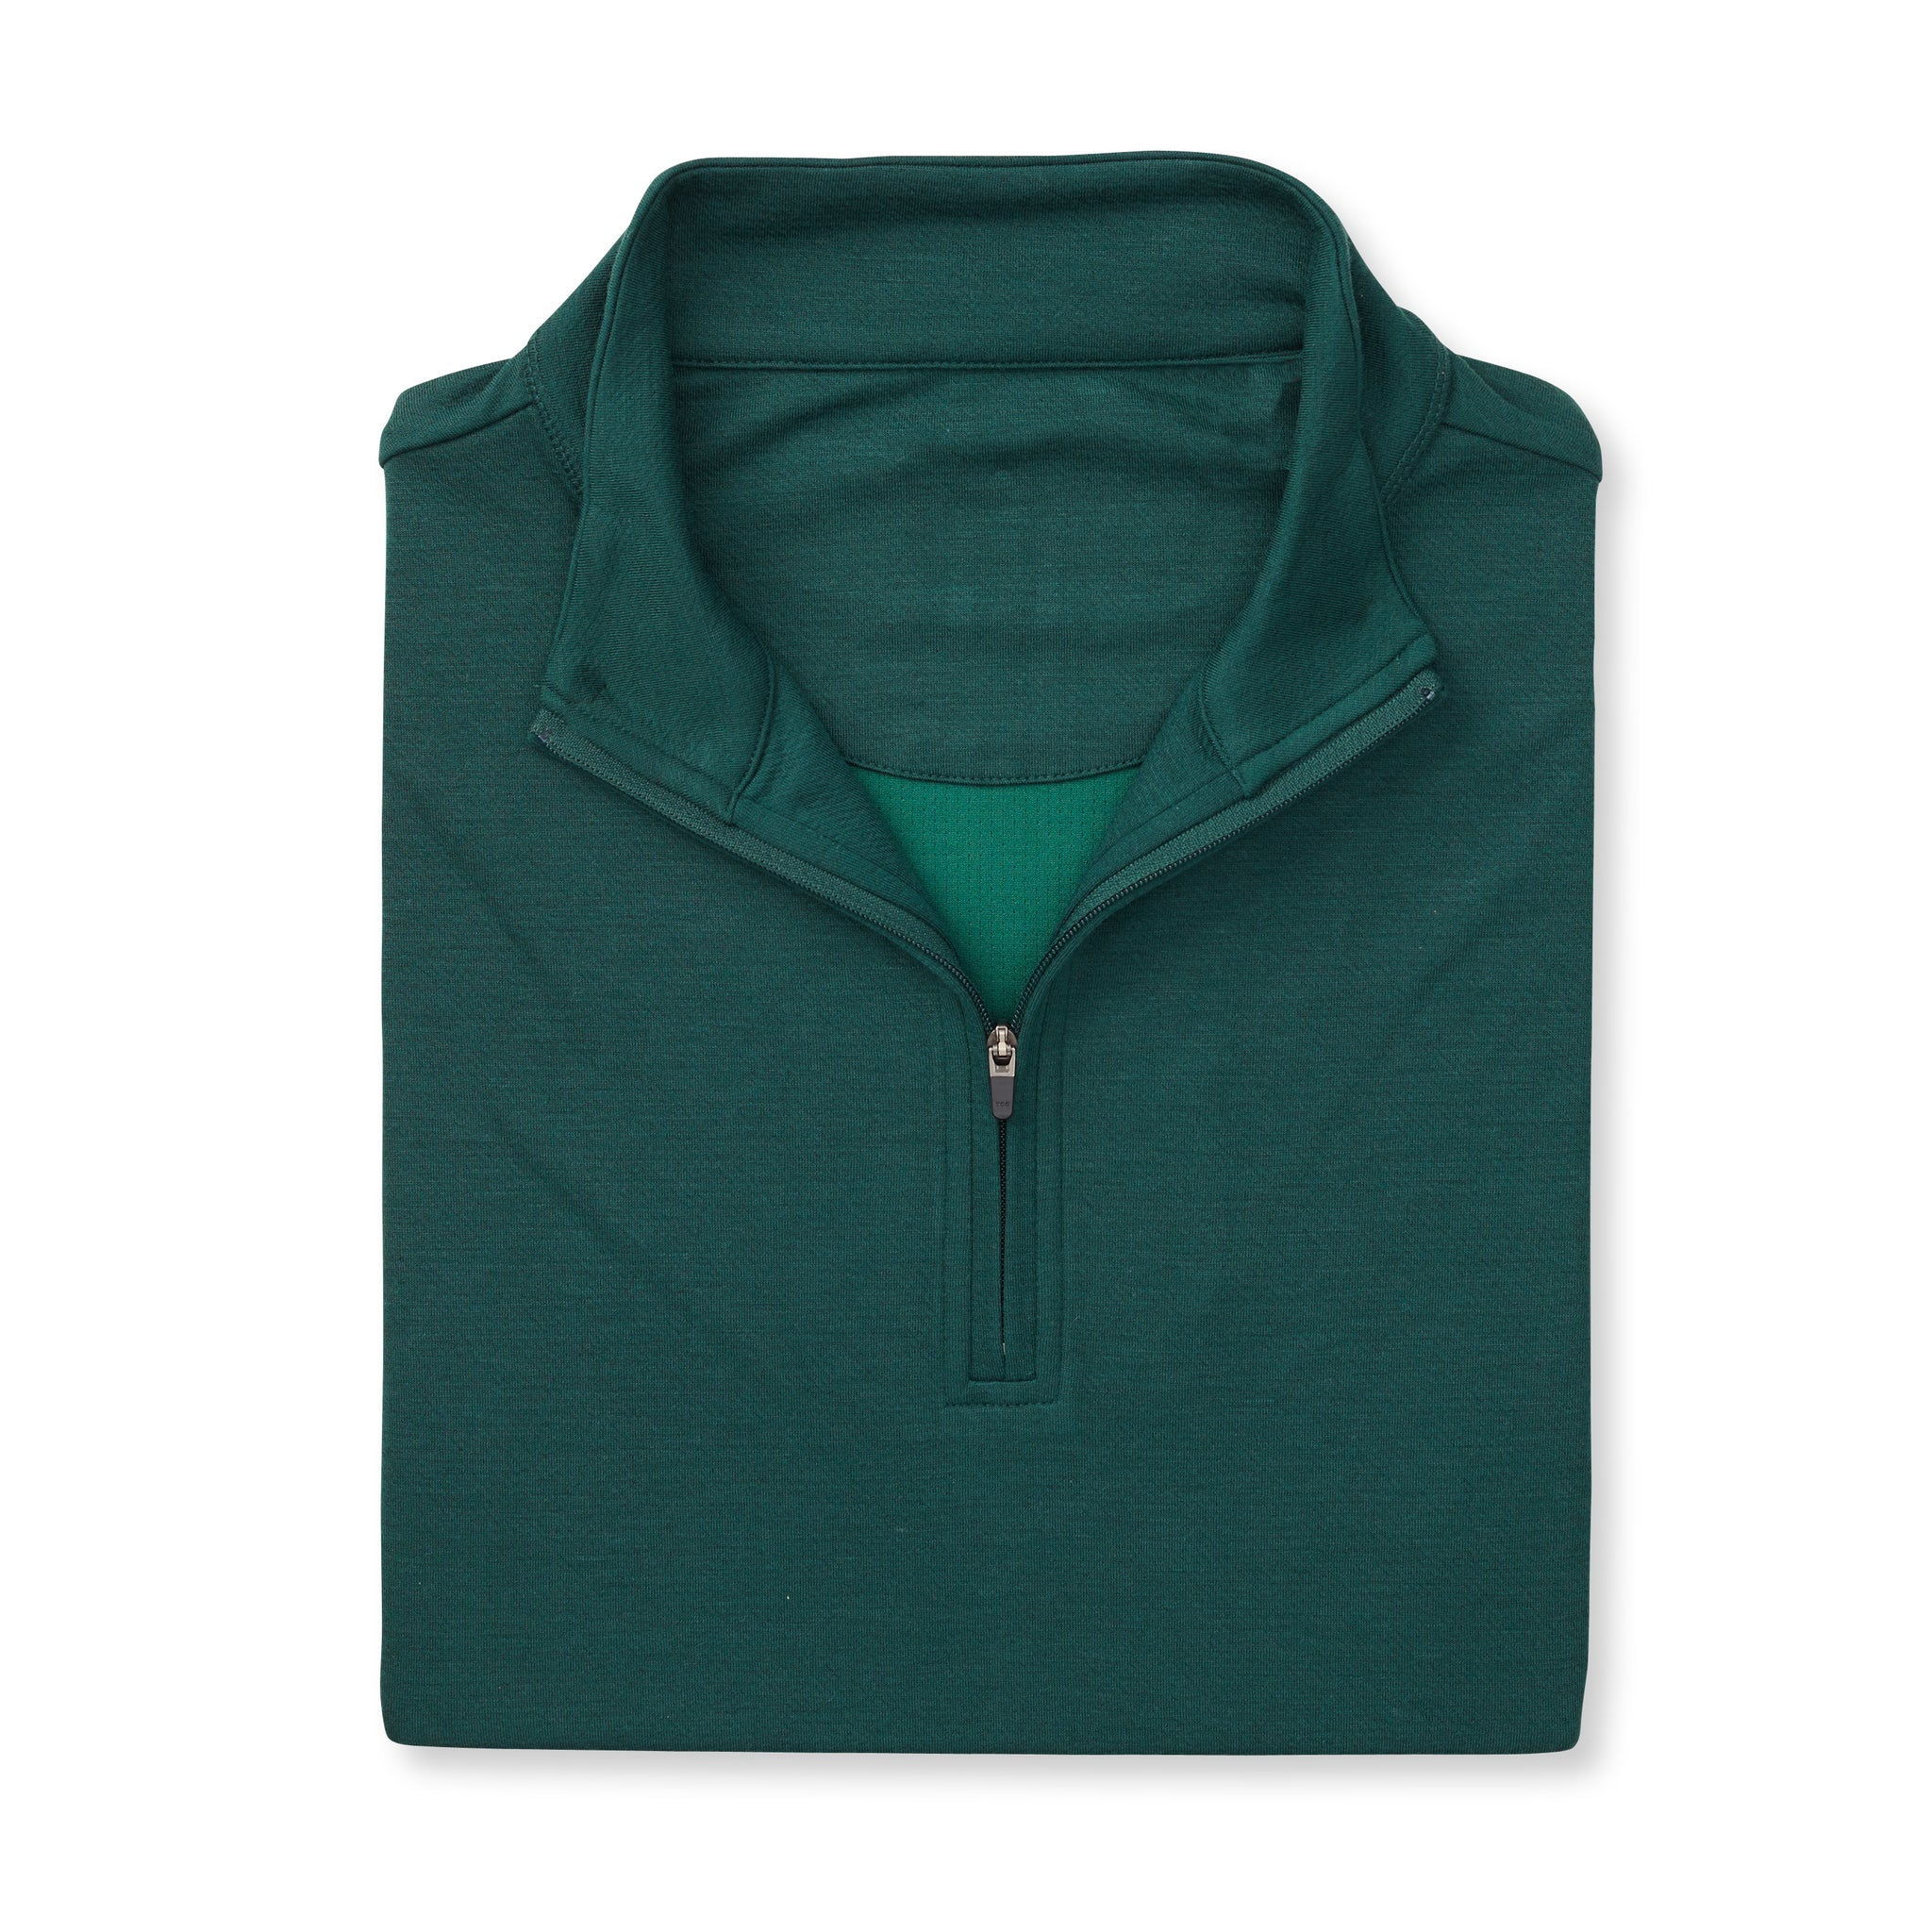 LOFTEC Half Zip Jacket - Pine IS66308HZ